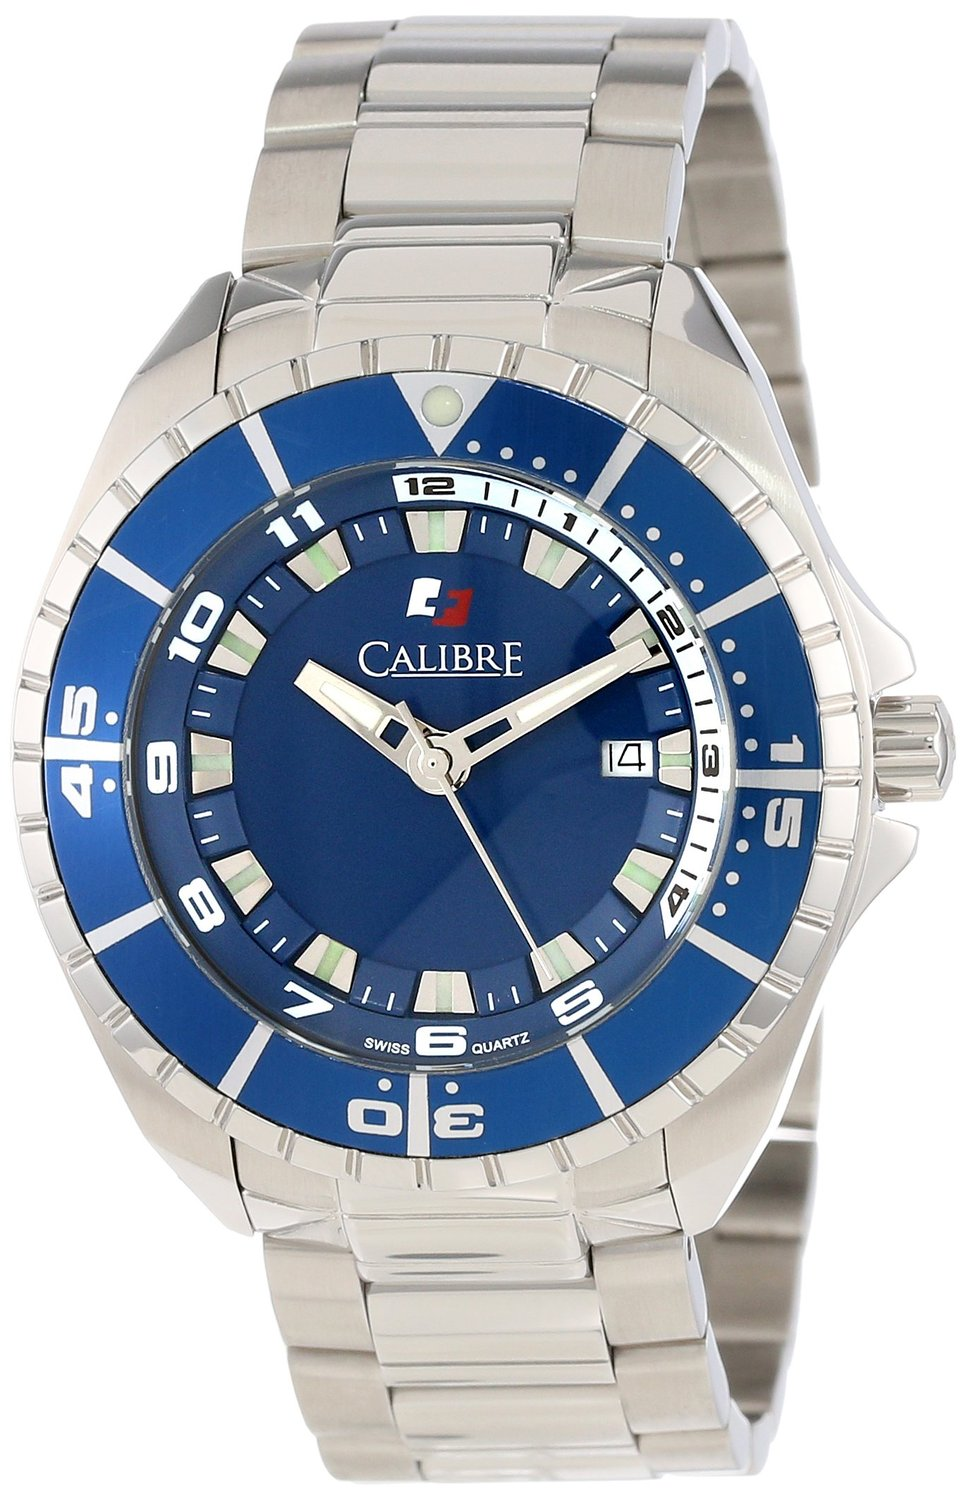 2016 Calibre watch